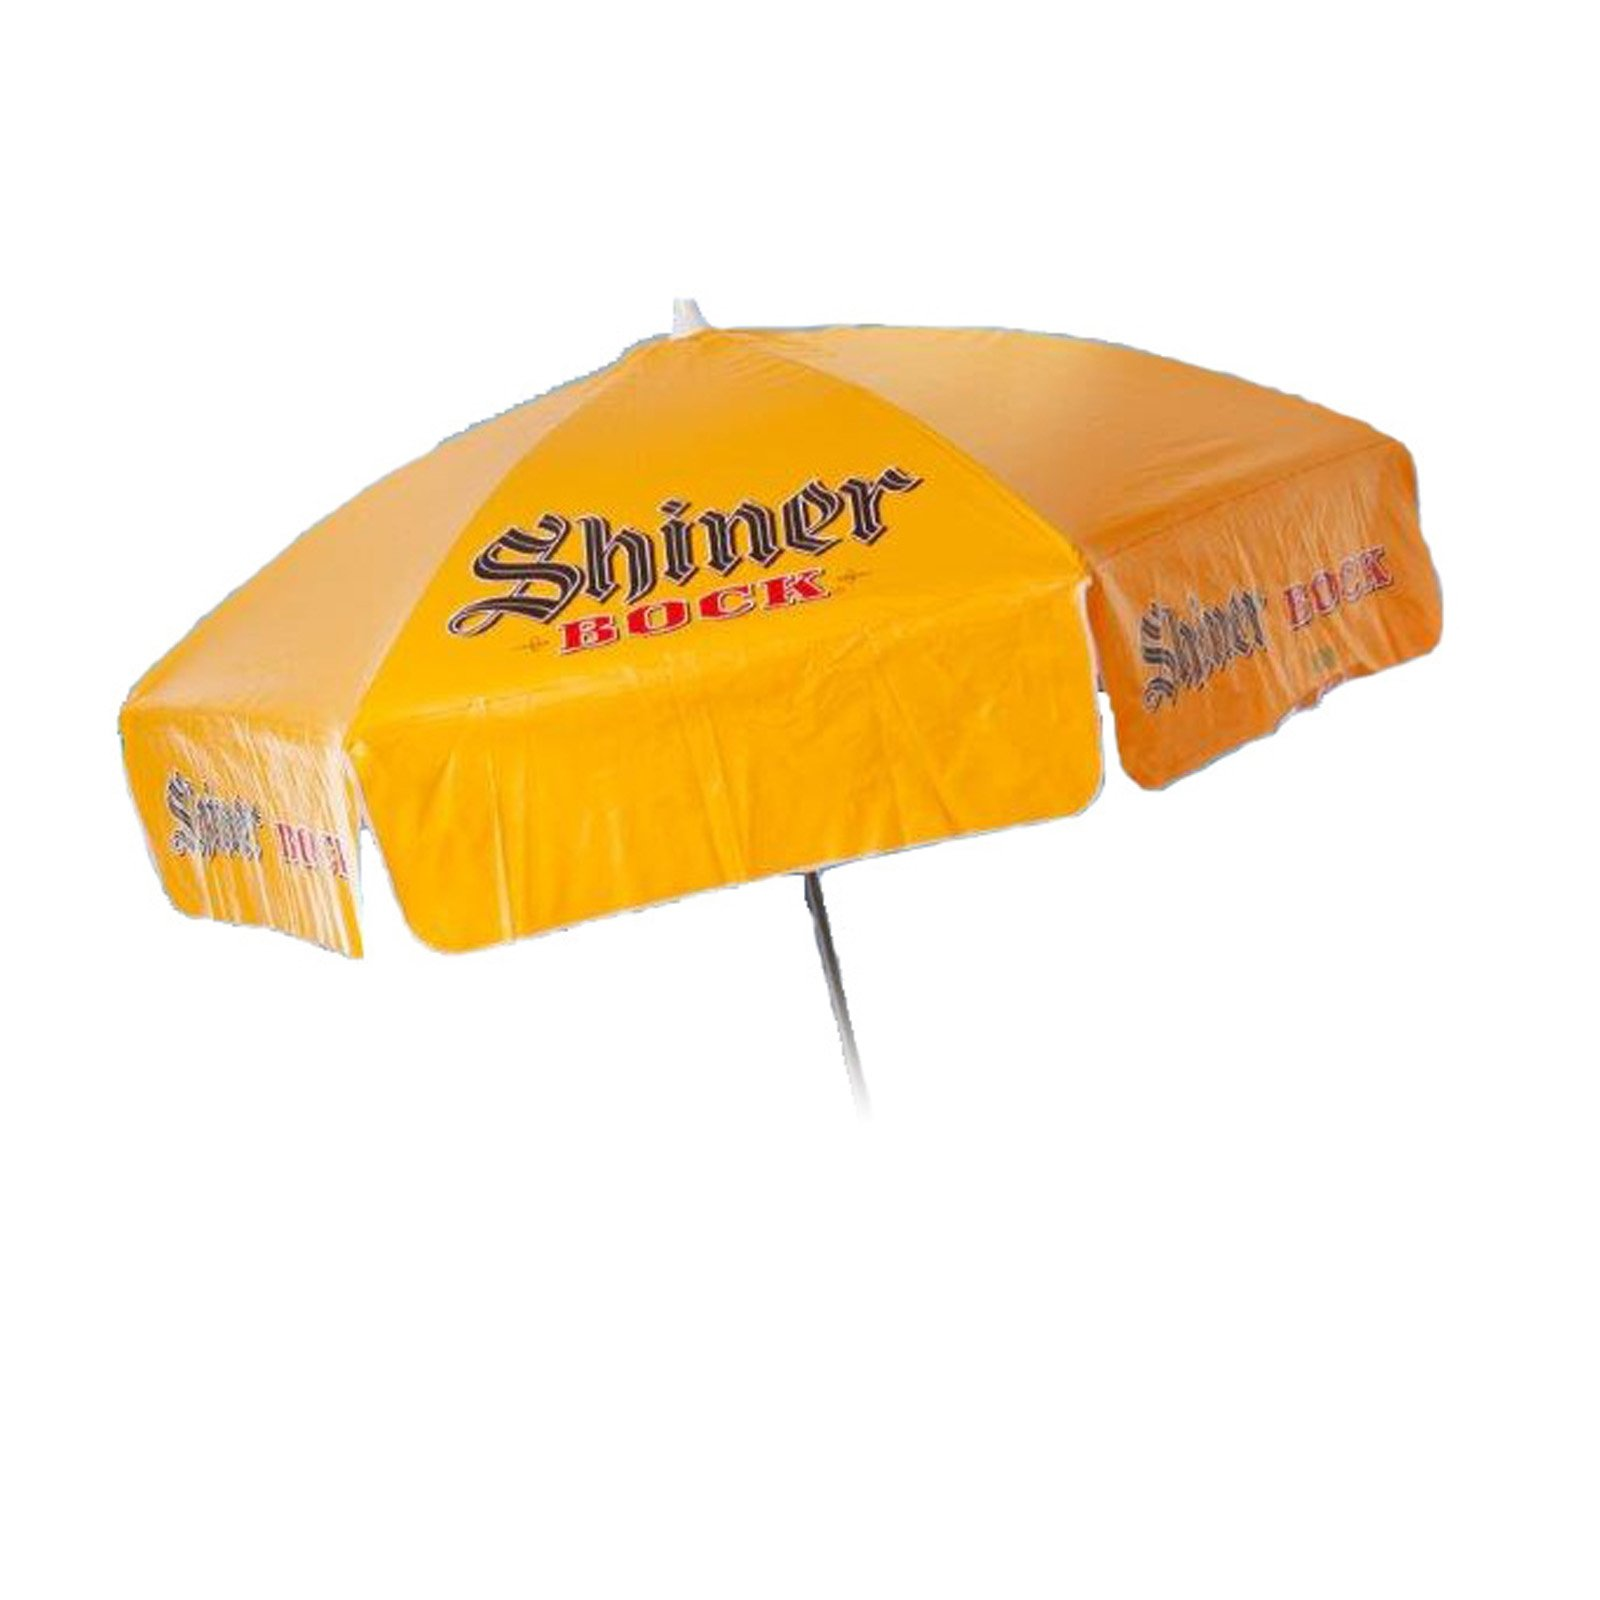 Shiner Bock 6 foot Vinyl Umbrella - Patio Pole